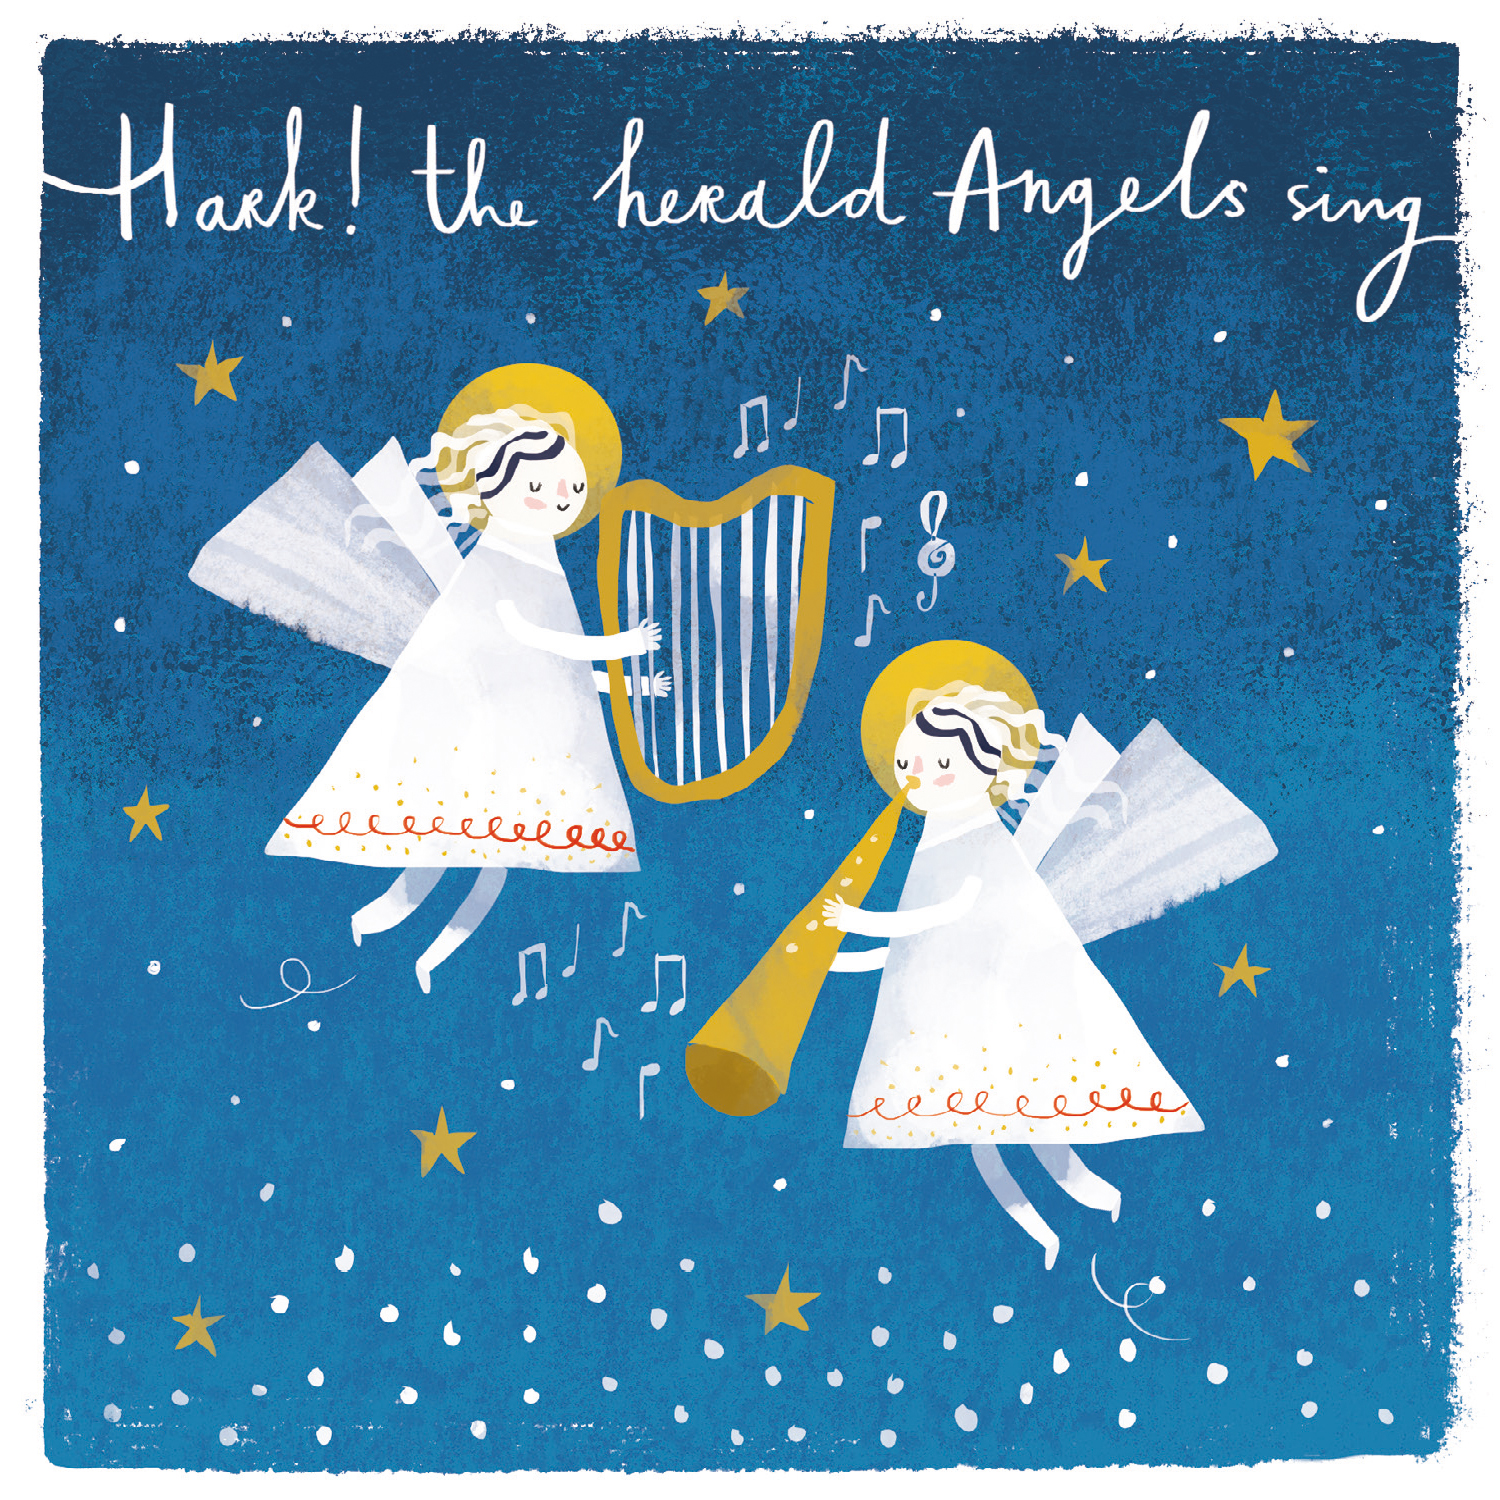 Angels Christmas Cards.Hark The Herald Angels Sing Christmas Card With Glitter